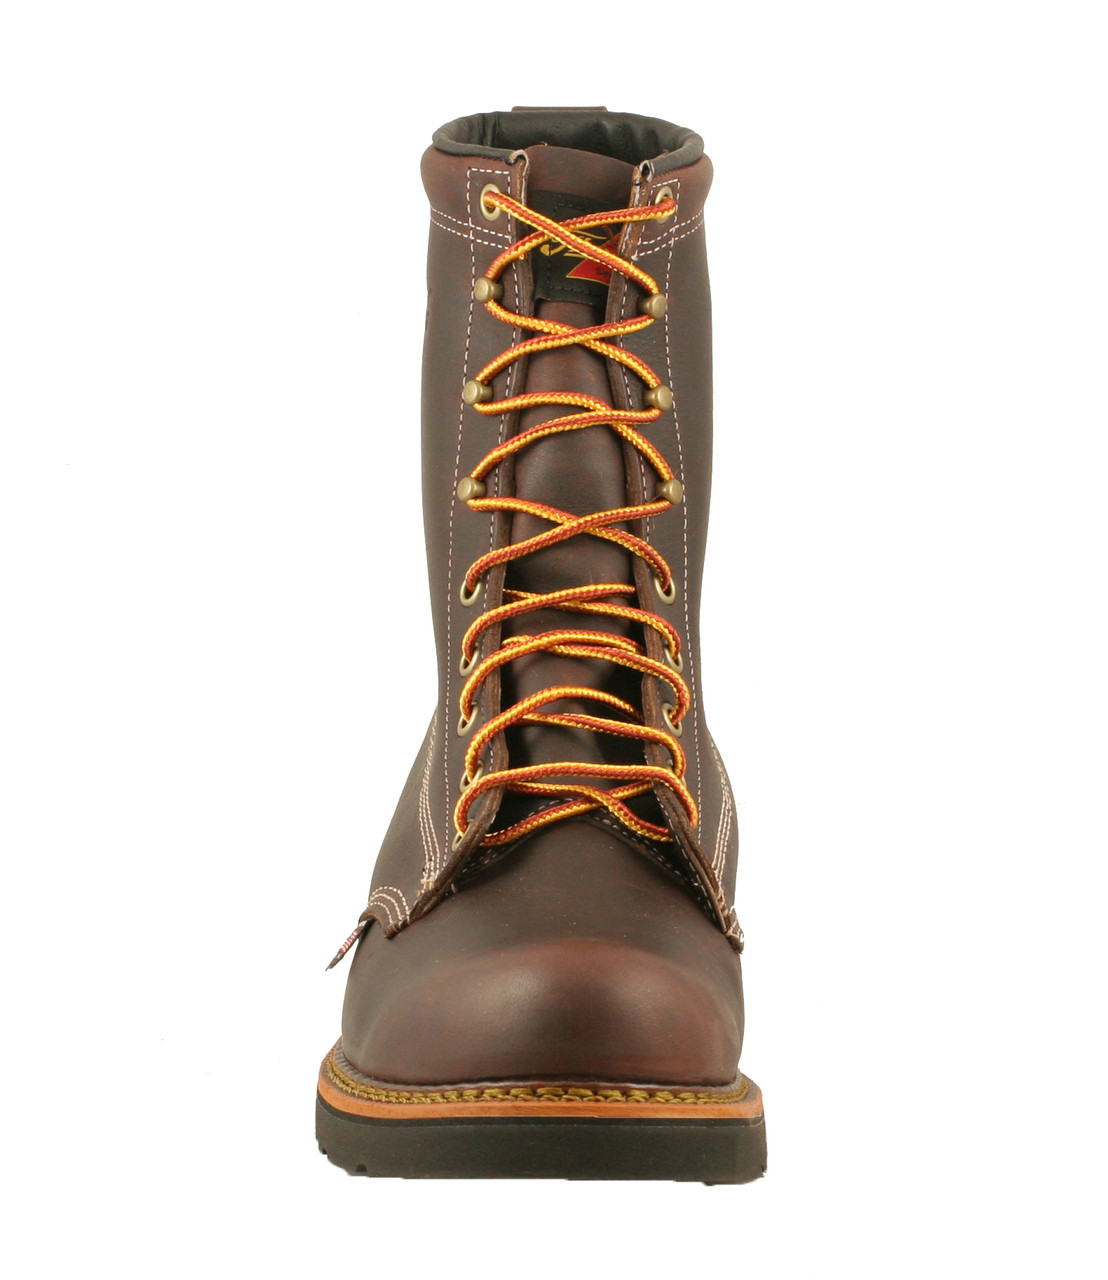 a62c4265531 Thorogood Men's 8'' Work Boots - Brown